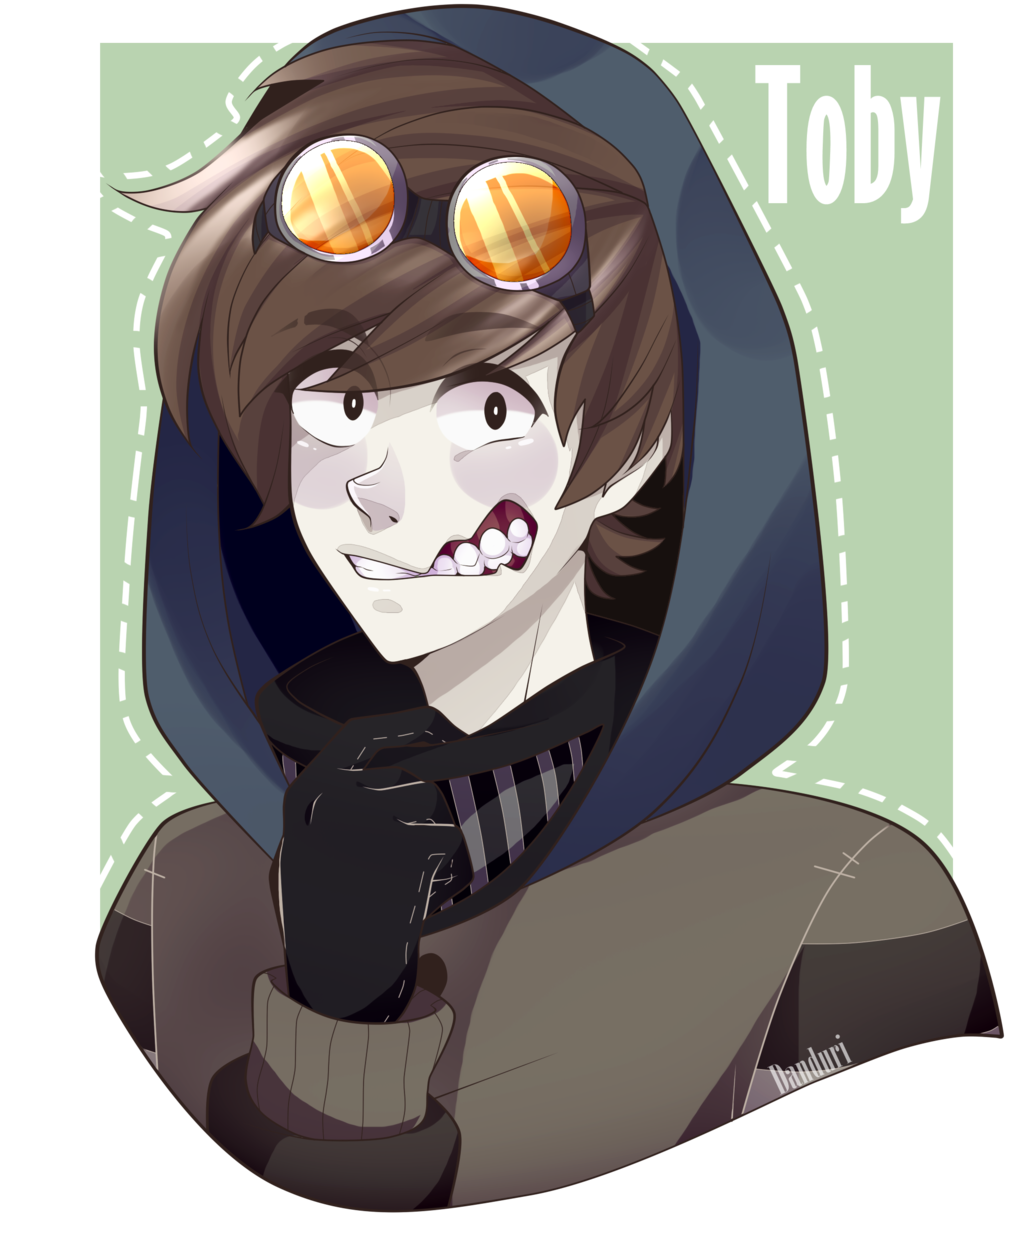 Fanart drawing ticci toby. Image result for creepypasta